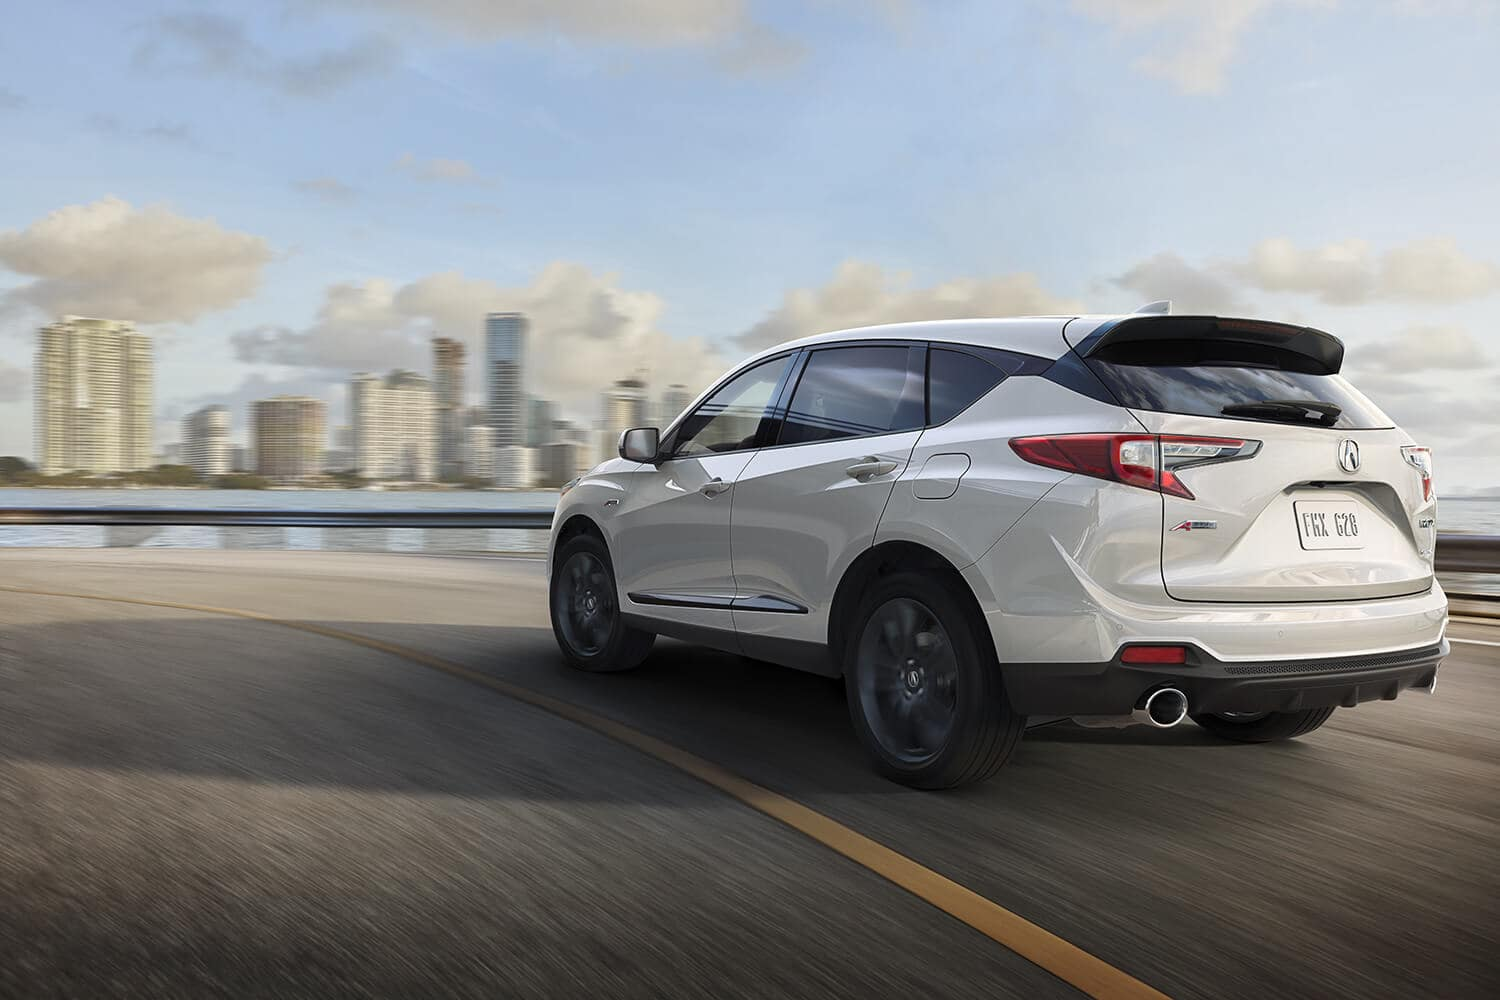 2019 Acura Rdx Houston Acura Dealers Luxury Crossover Suv In Texas